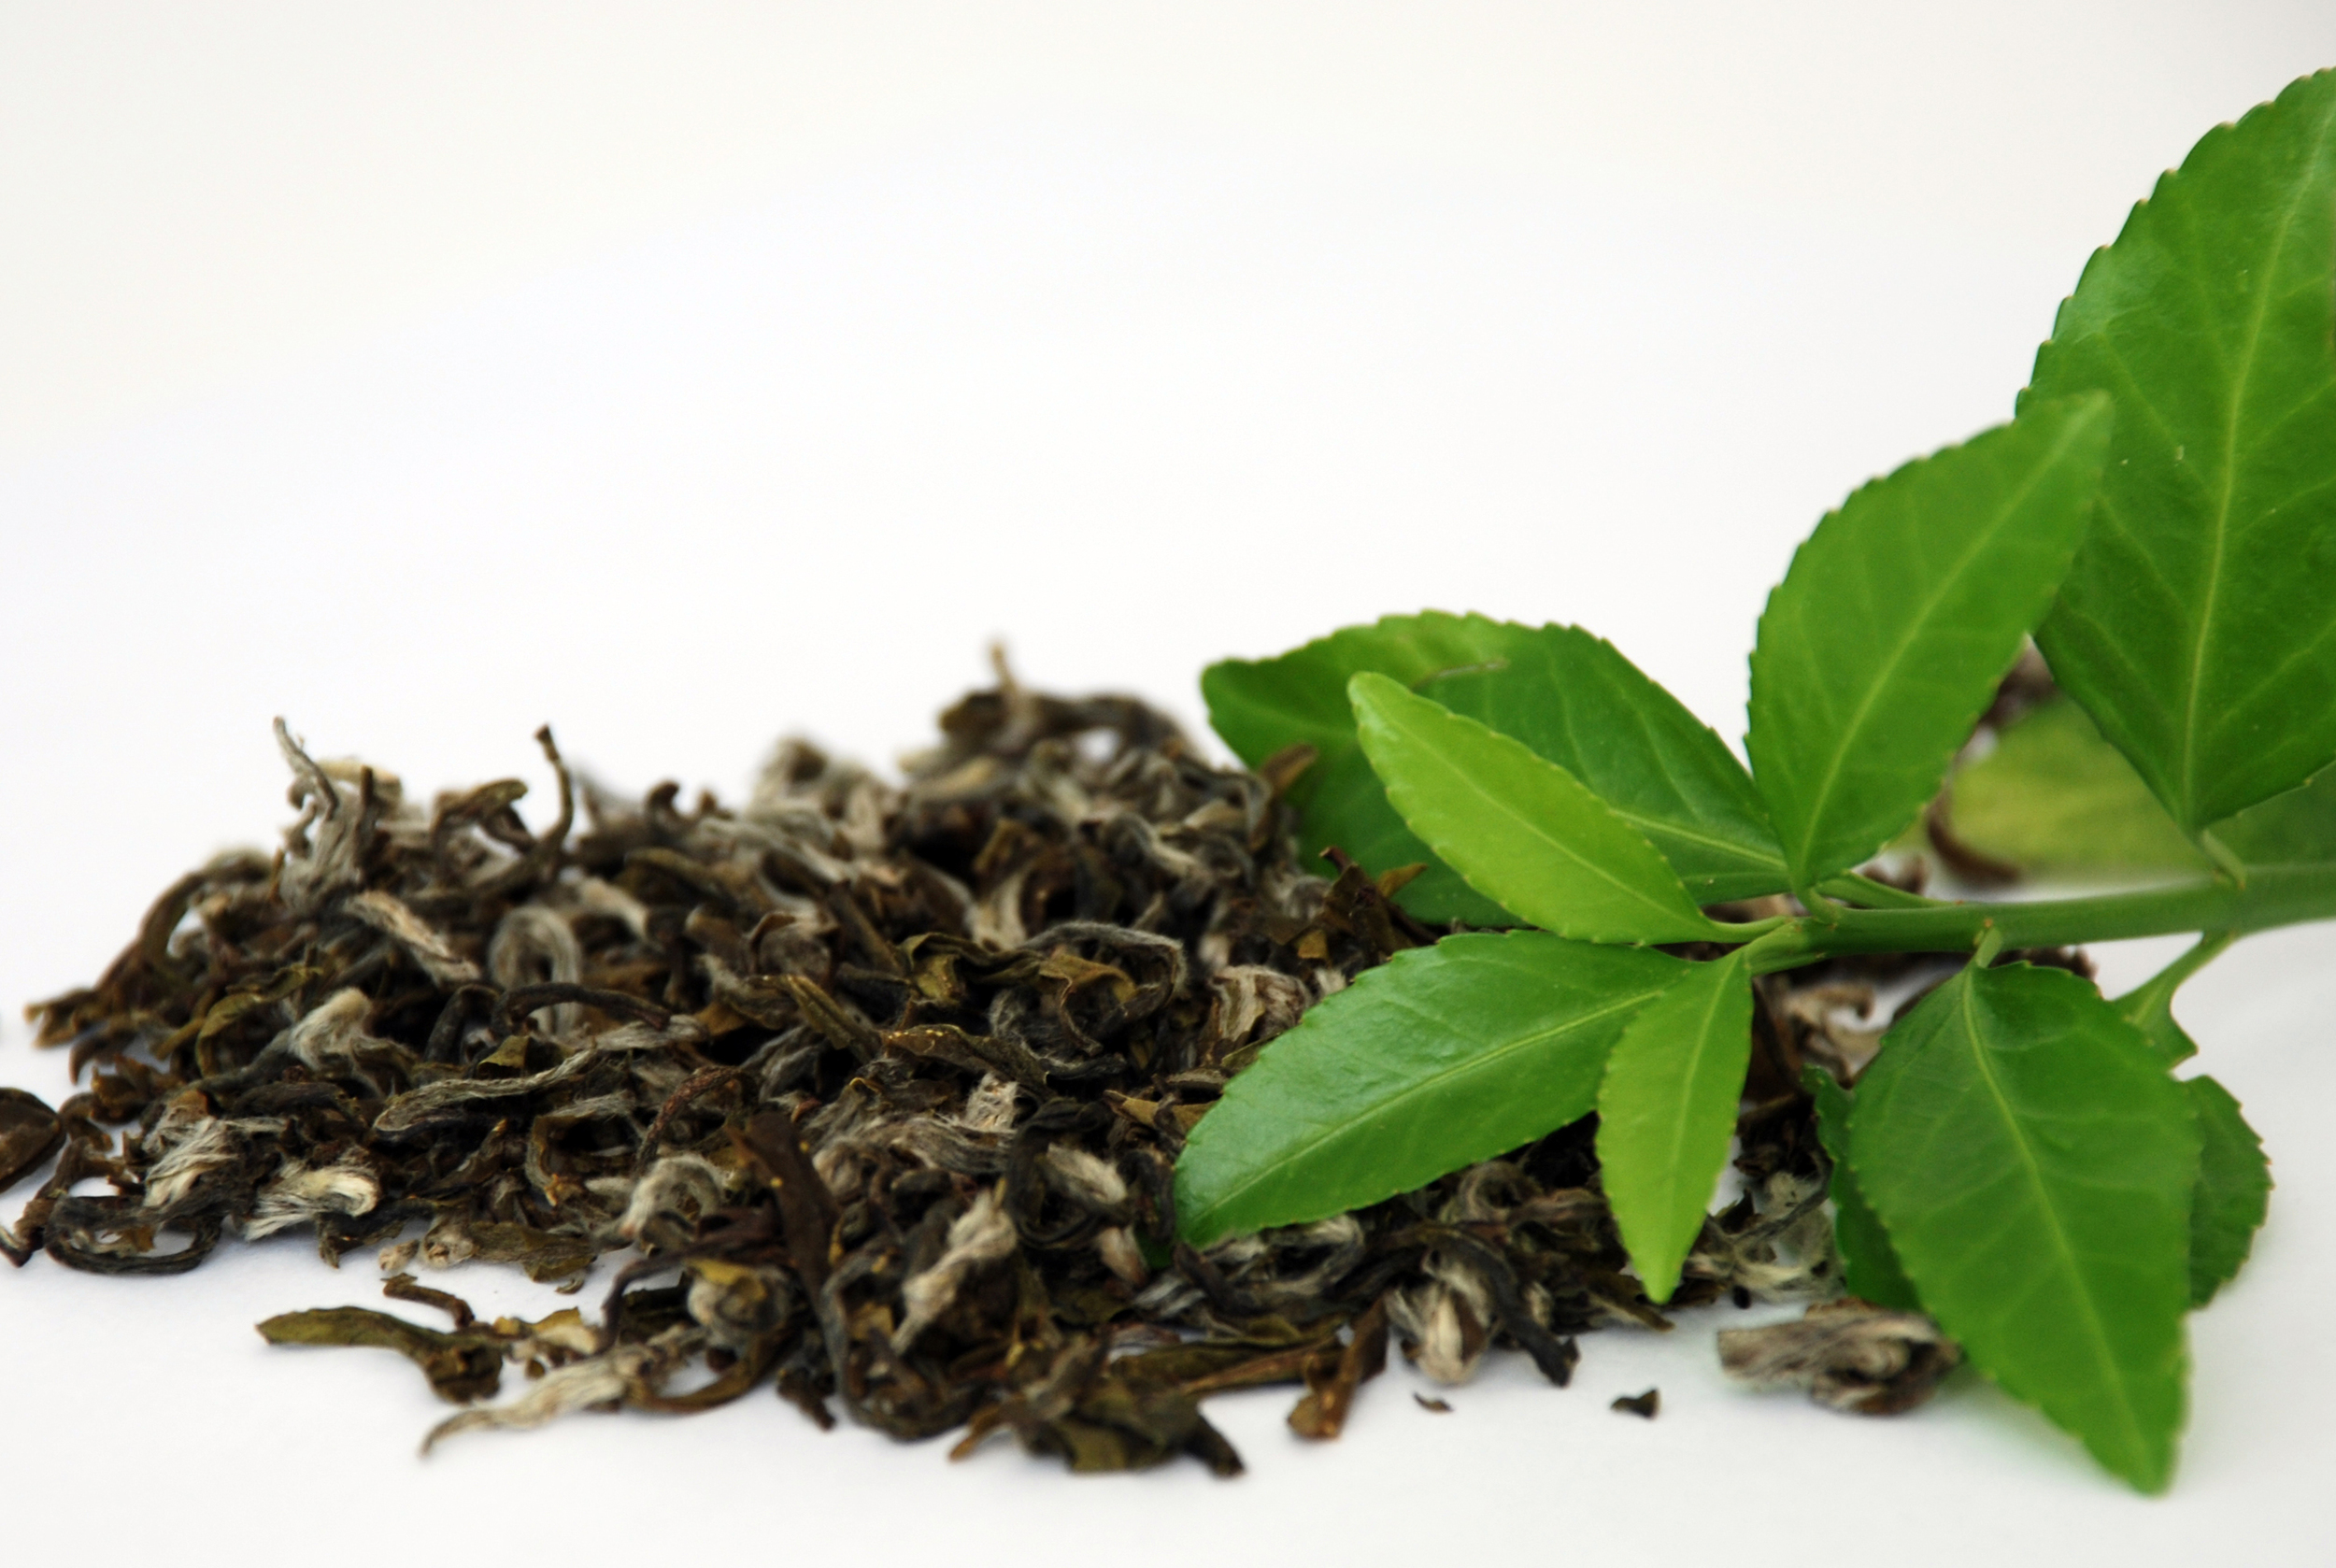 Green tea  filled with antioxidants and nutrients, green tea can improve brain function, fat loss, and many more benefits